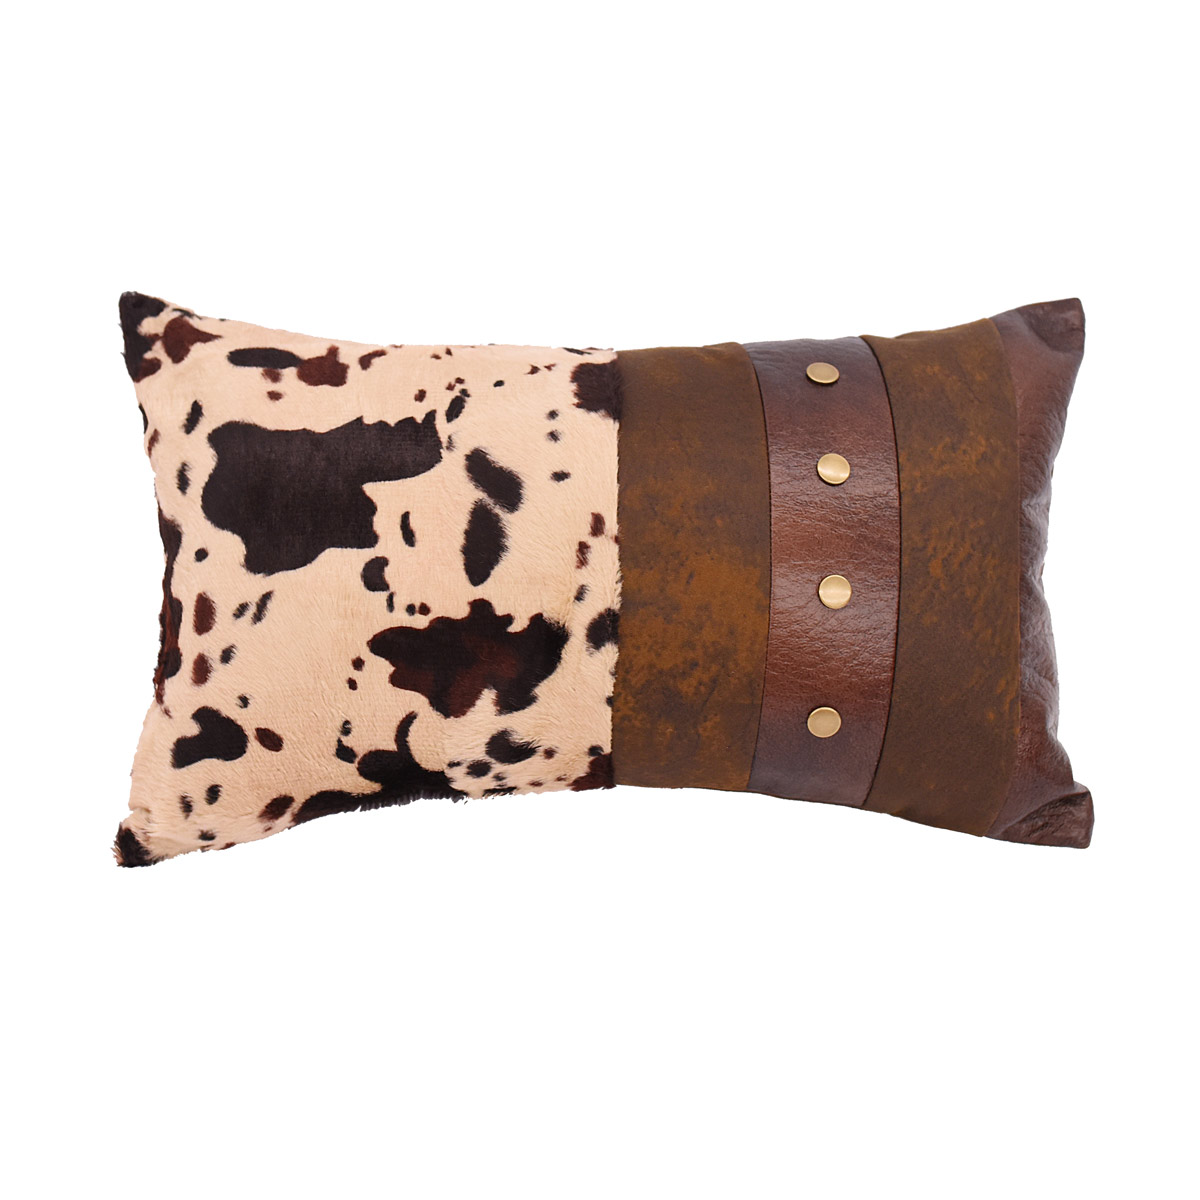 Studded Band Faux Leather and Cowhide Pillow